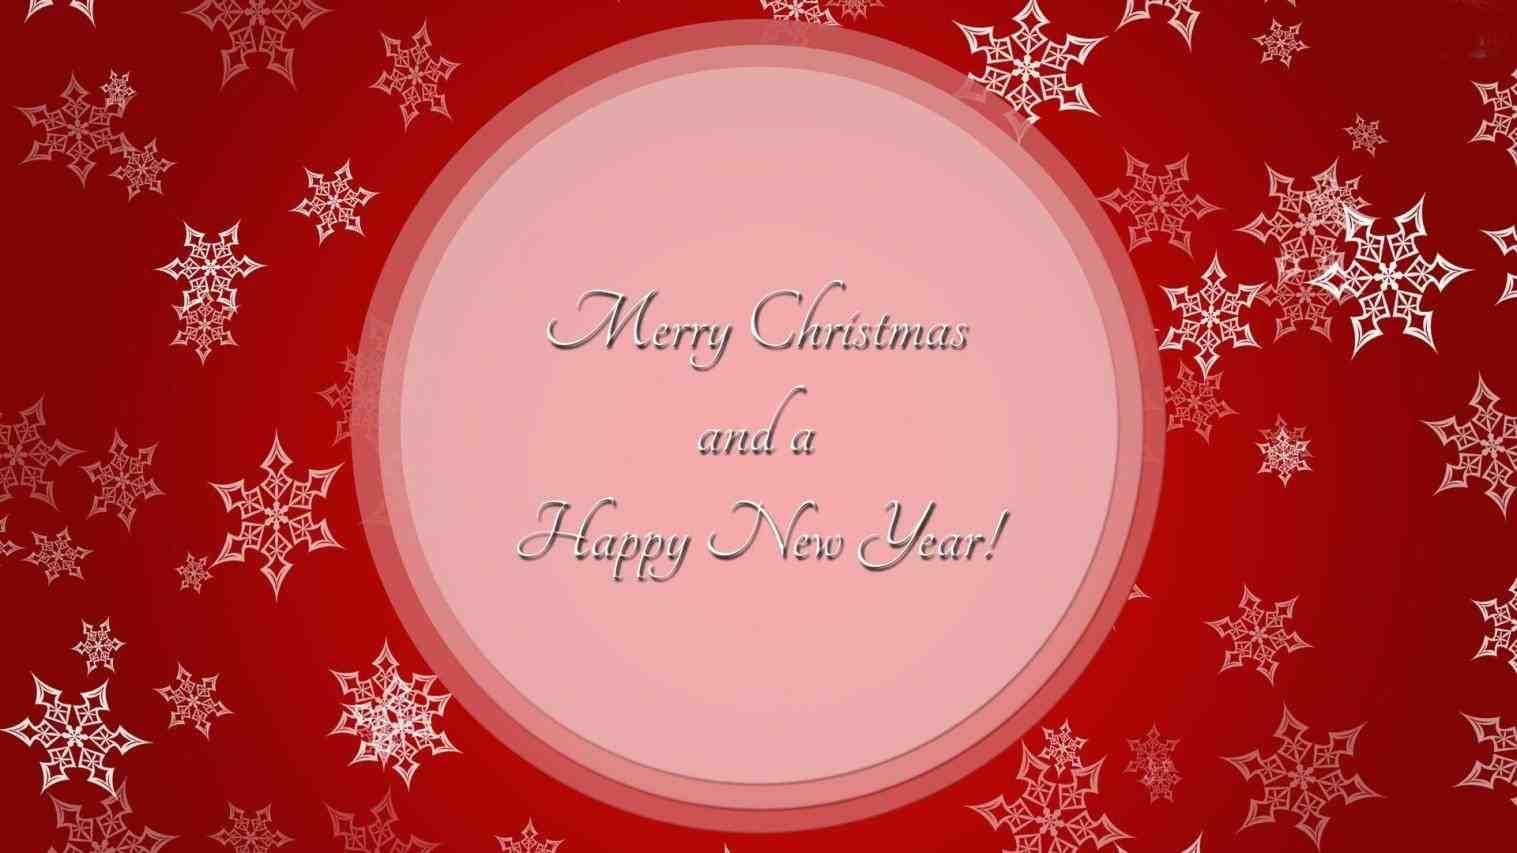 Merry Christmas And Happy New Year 2017 Greetings Happy New Year